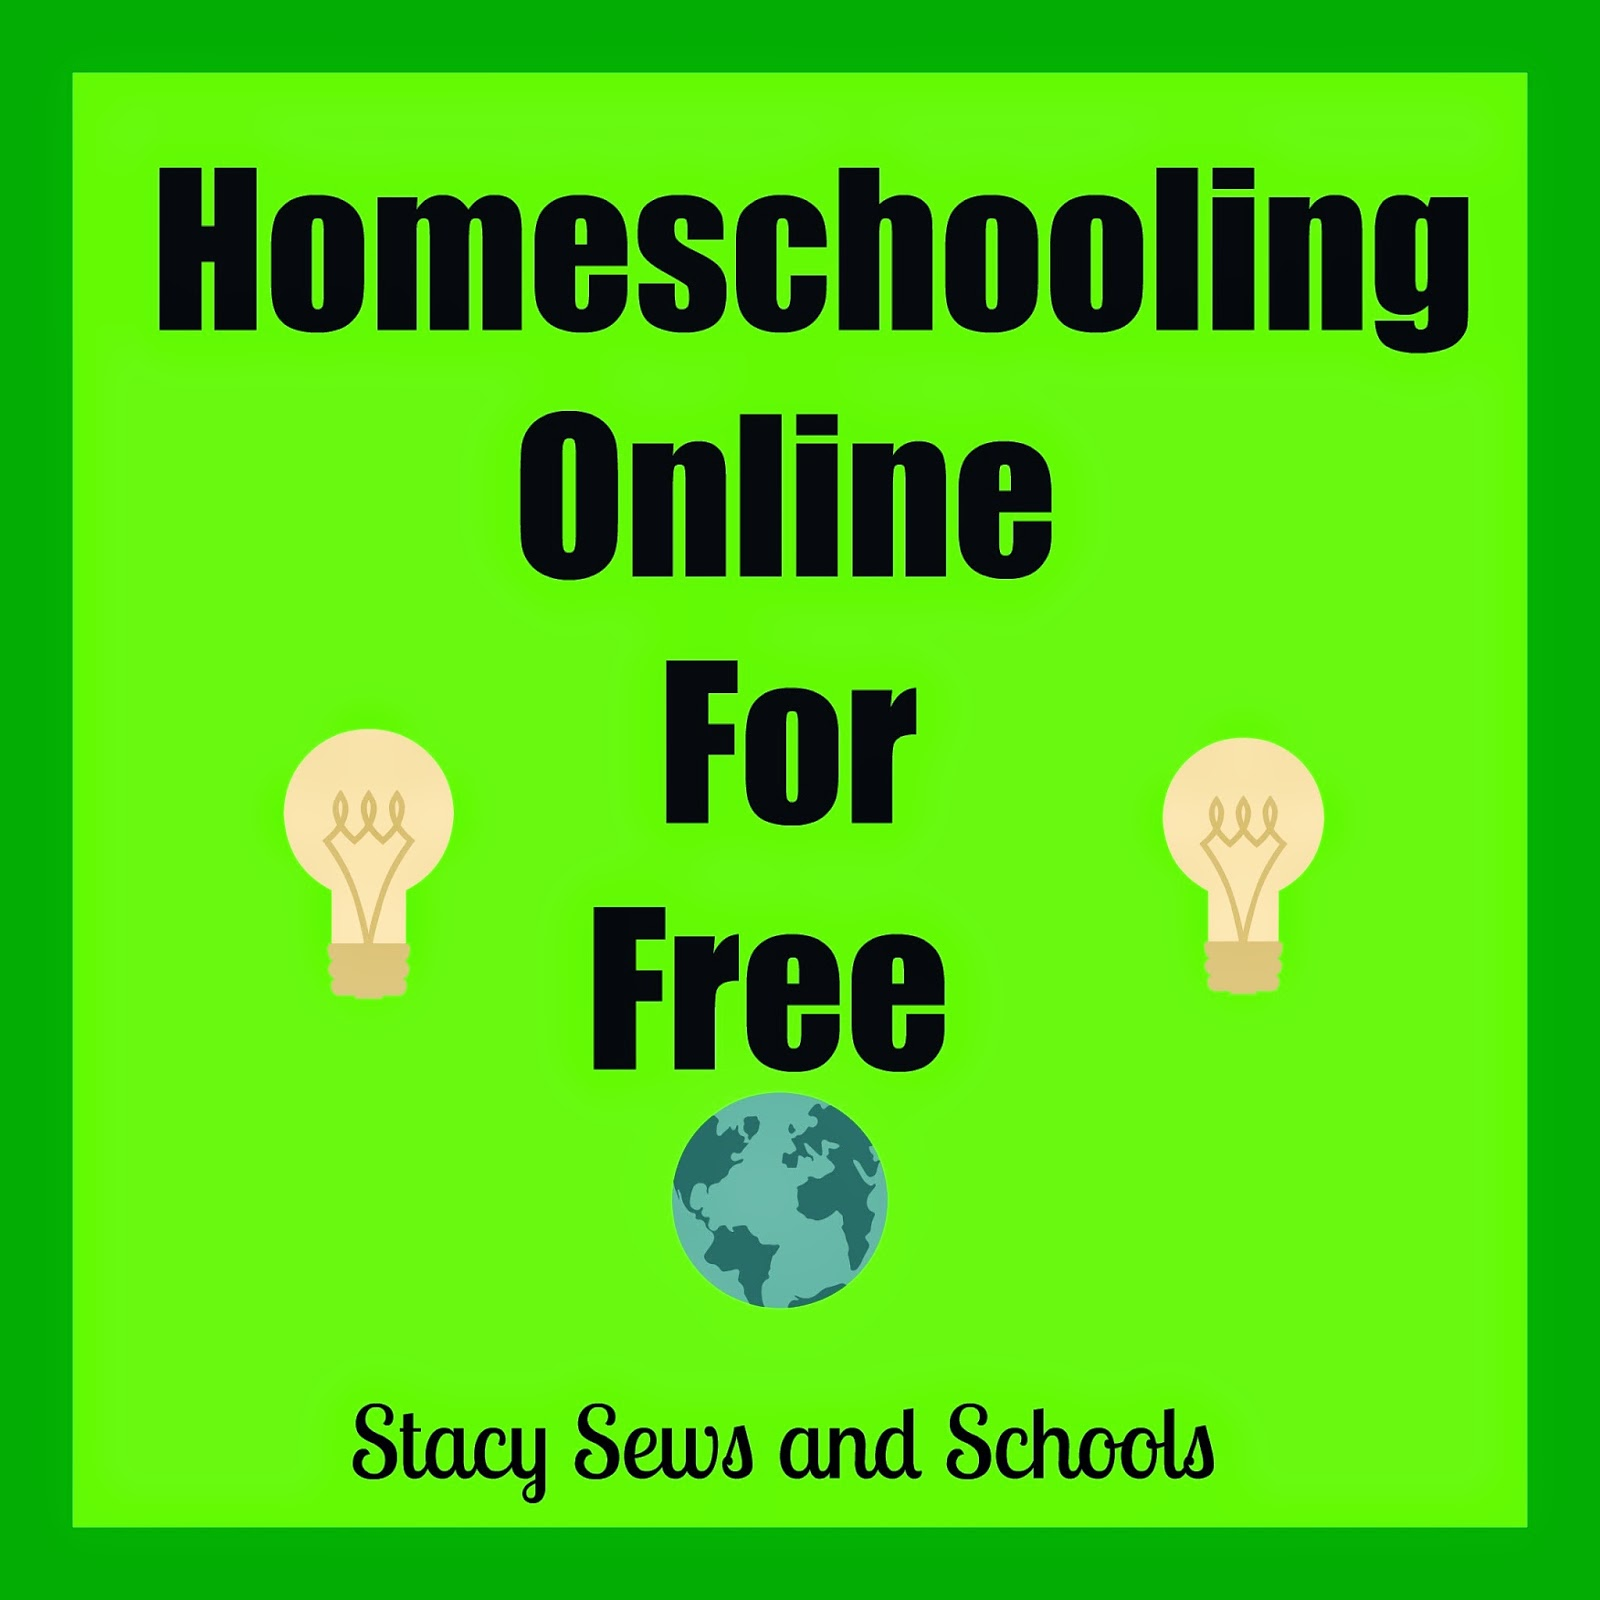 Worksheet Homeschooling Online For Free stacy sews and schools homeschool online for free the other day i noticed that have been a little lax in posting homeschooling ideas yiles sorry about that